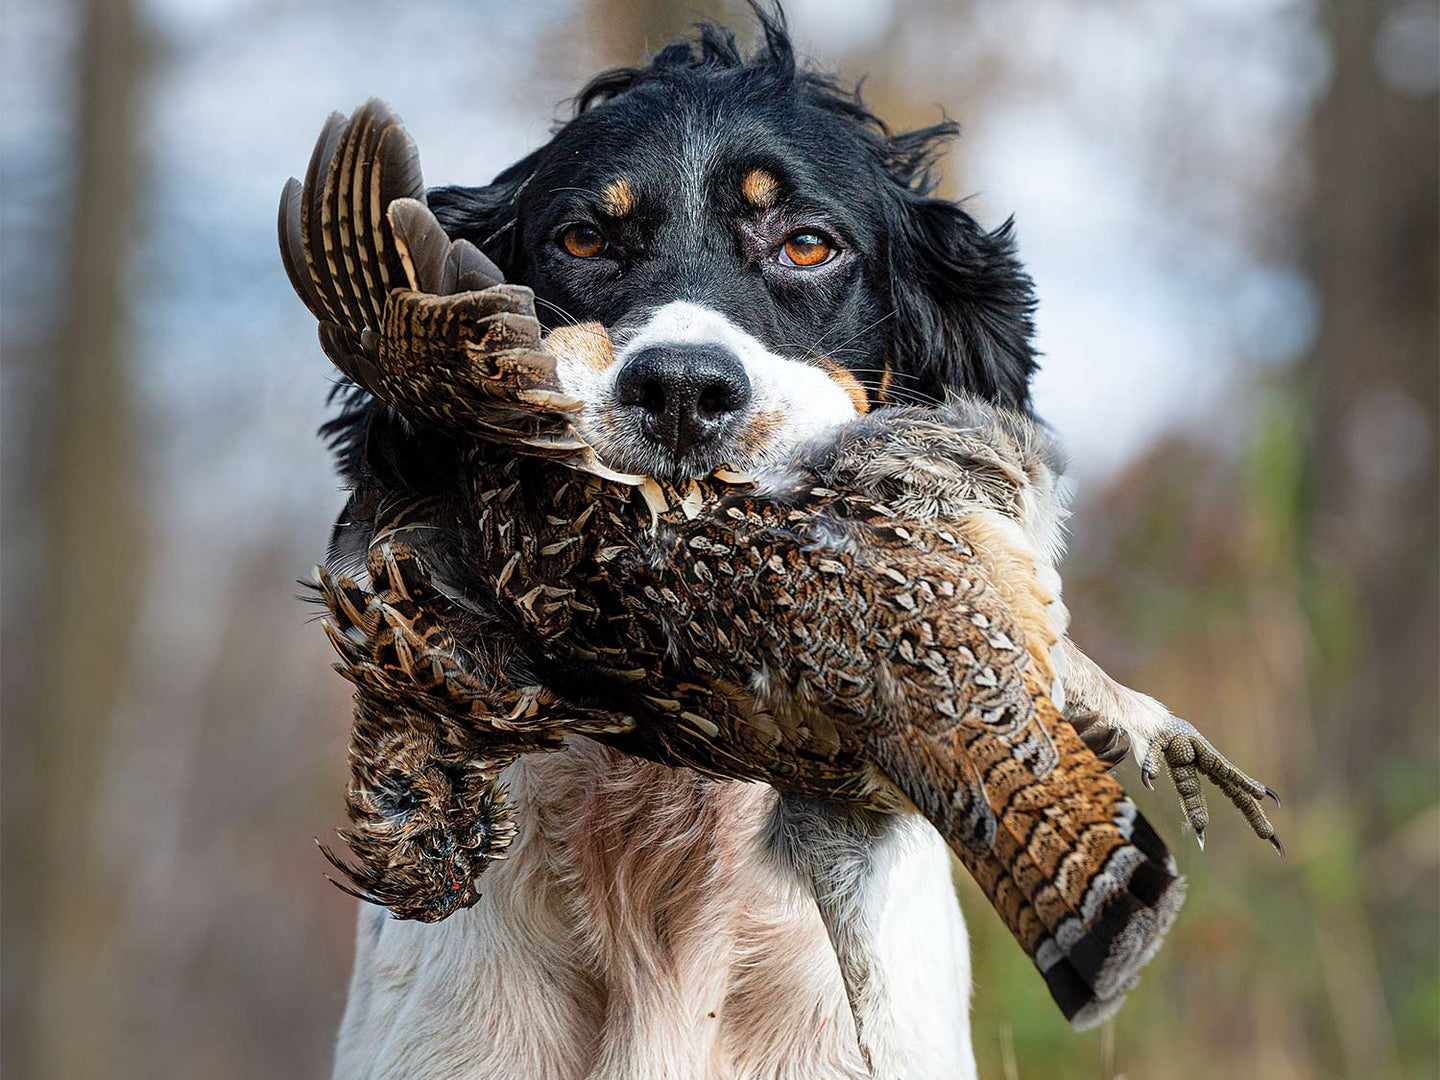 A hunting dog holding a ruffed grouse.